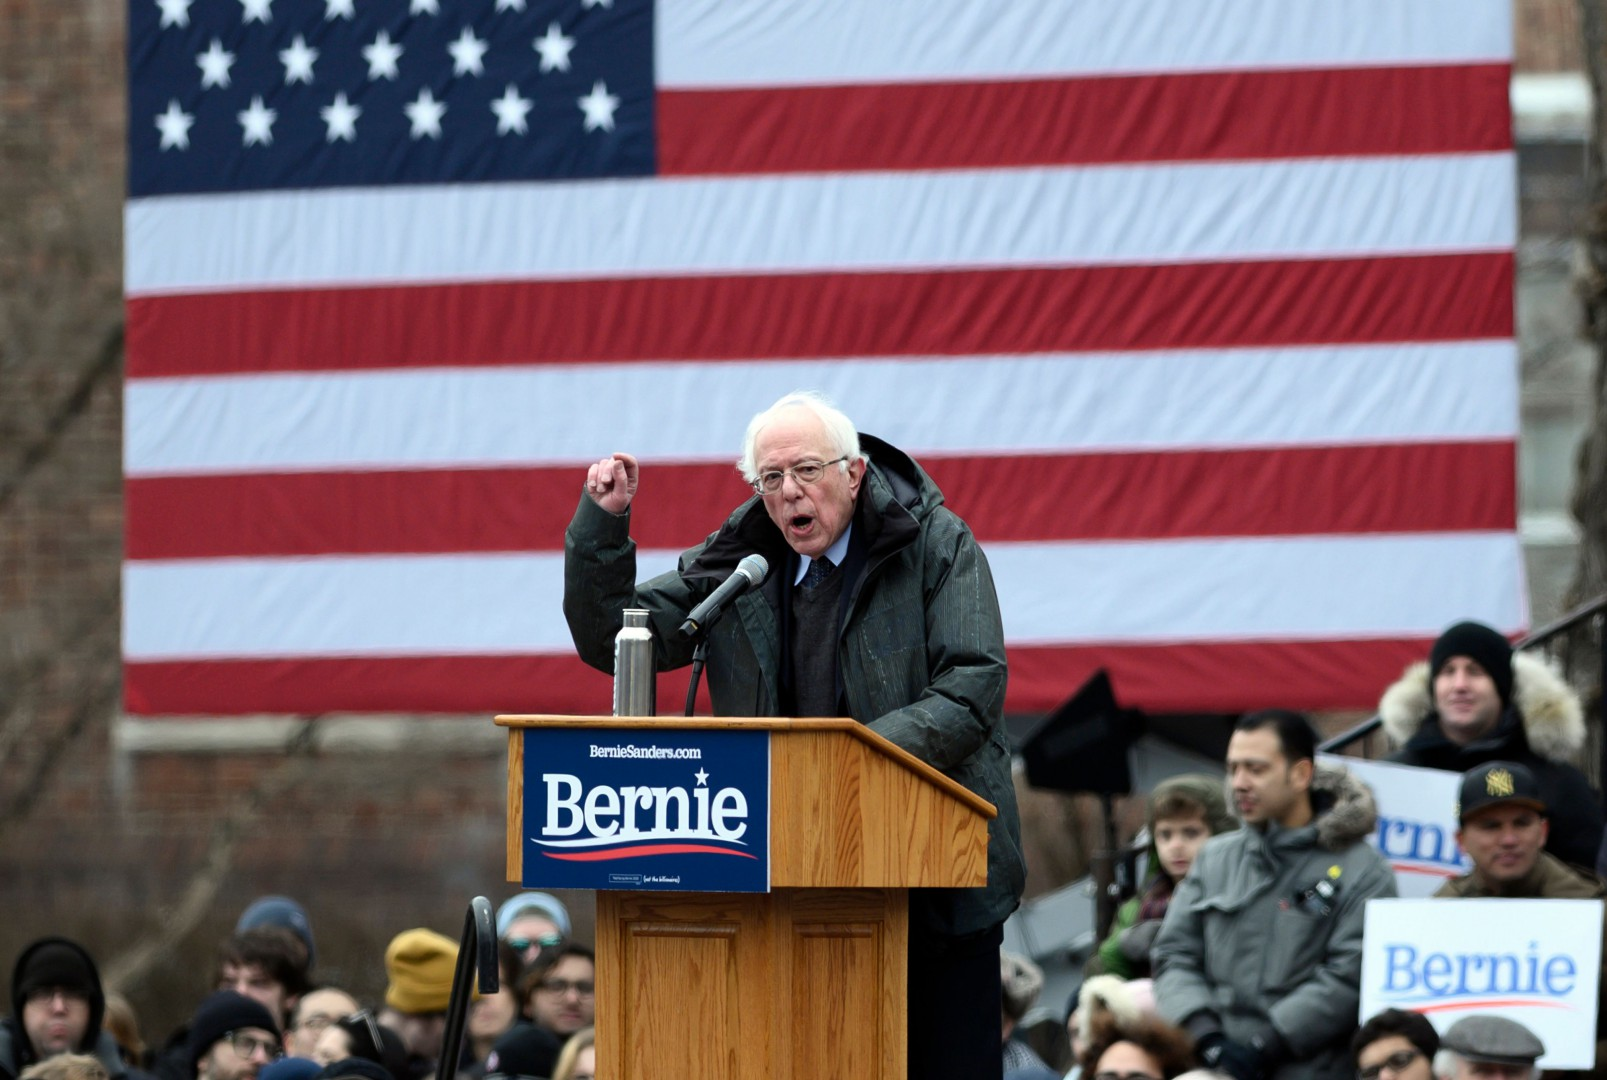 US Senator Bernie Sanders speaks during a rally to kick off his 2020 US presidential campaign, in the Brooklyn borough of New York City on March 2, 2019. (Photo by JOHANNES EISELE / AFP) / ALTERNATIVE CROP